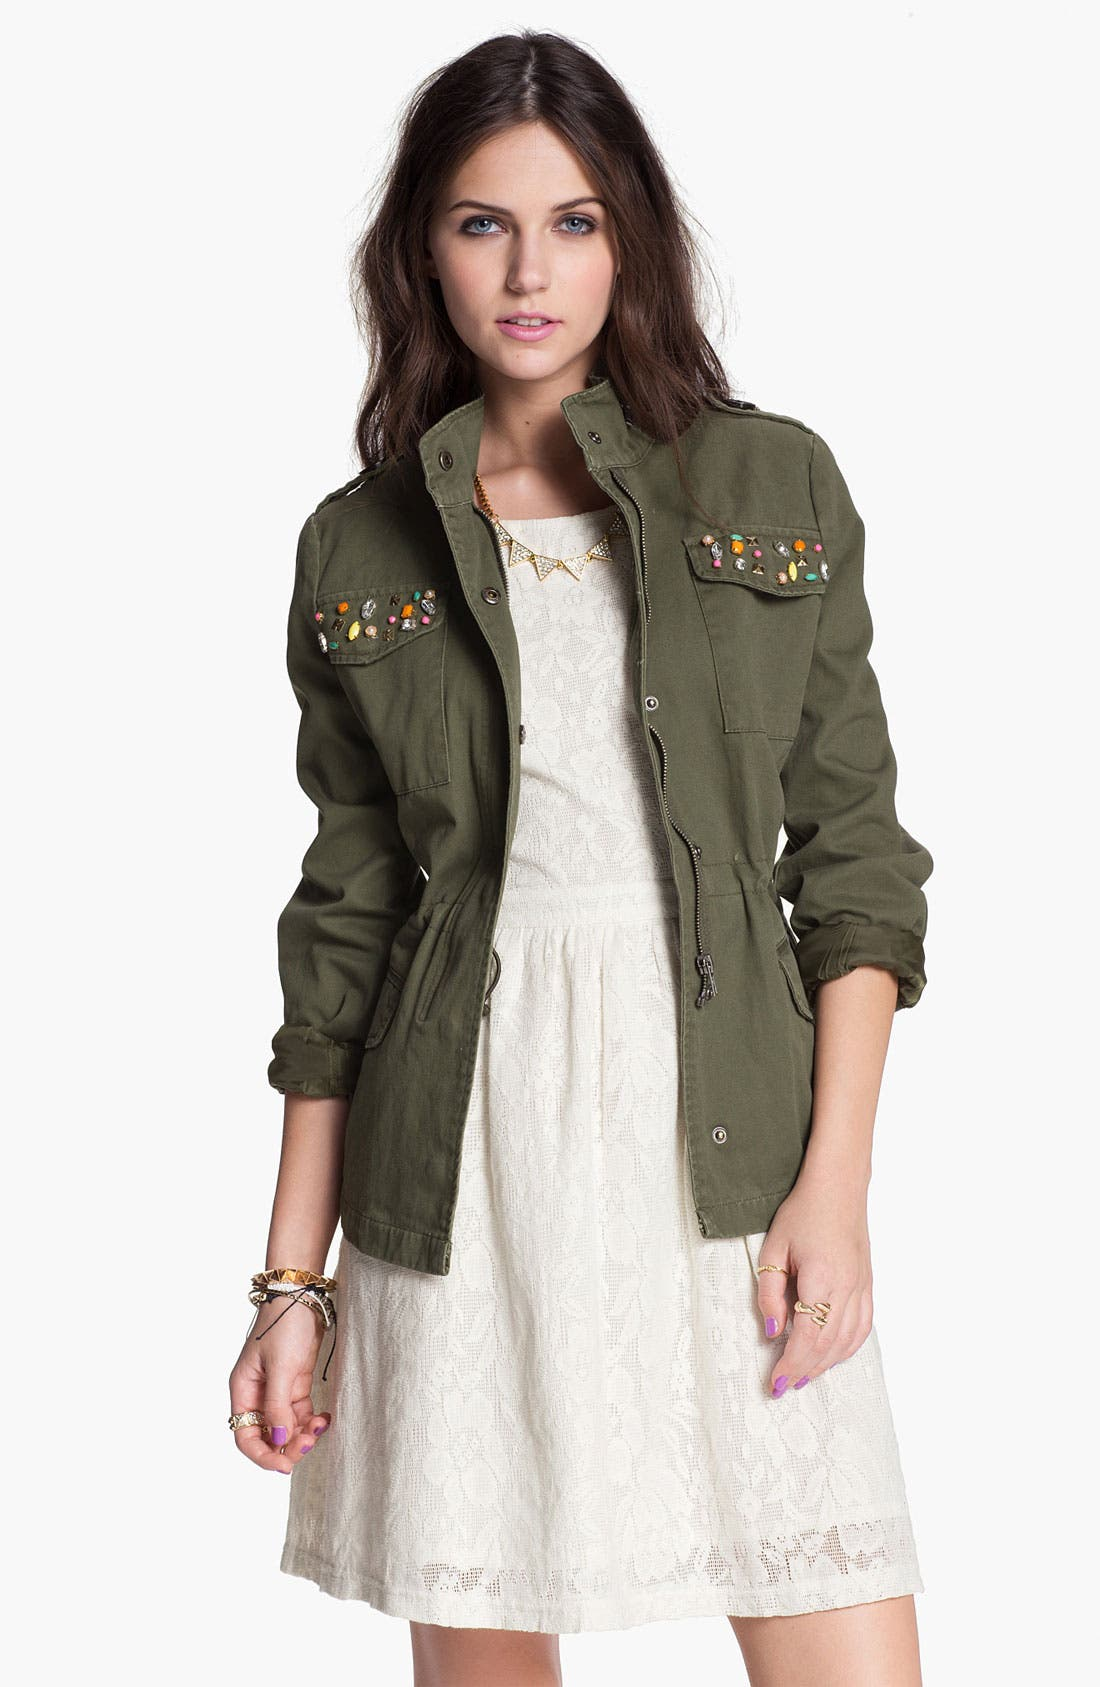 Alternate Image 1 Selected - Jolt Embellished Utility Jacket (Juniors)